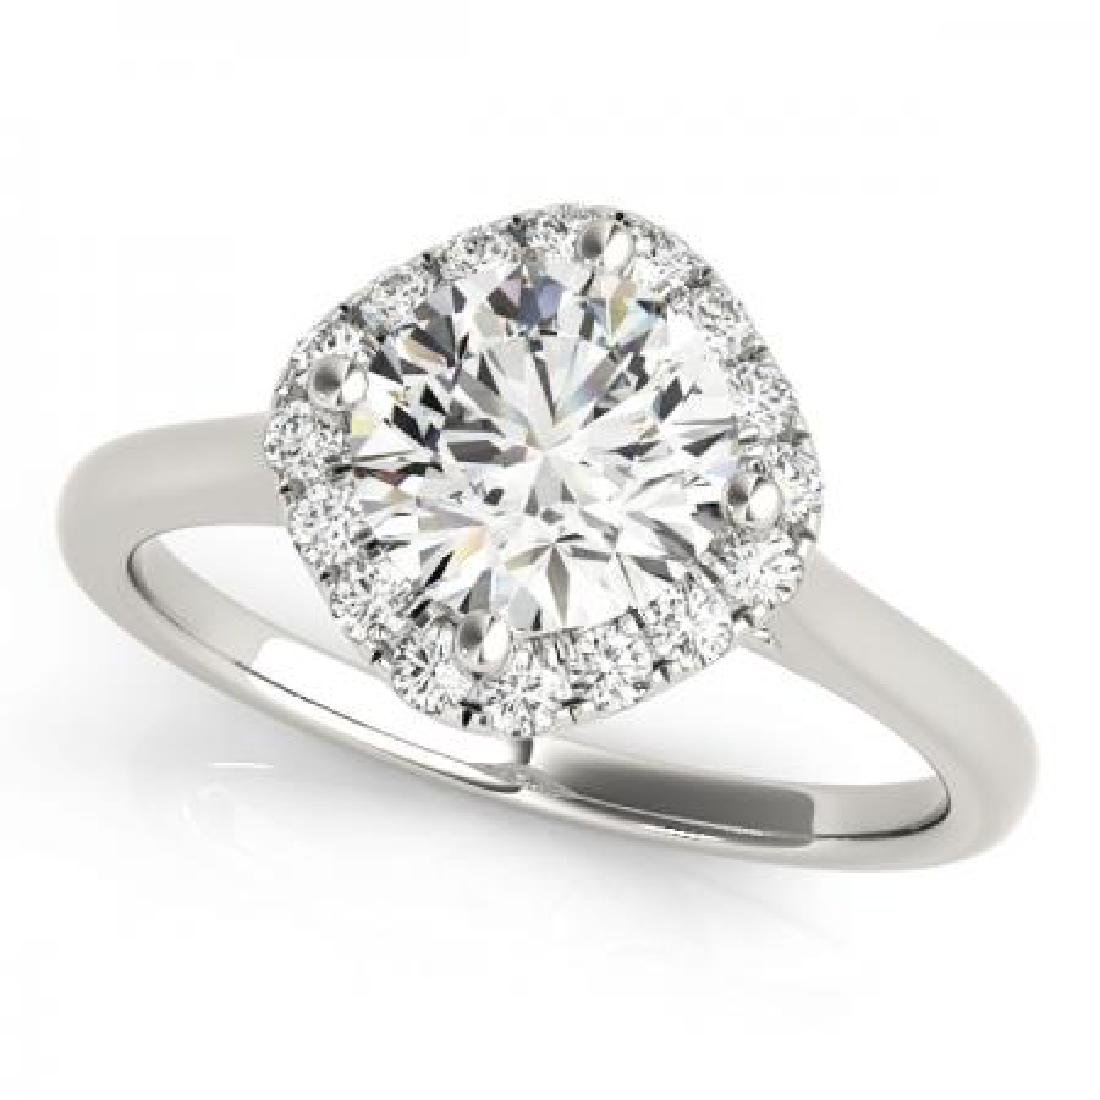 CERTIFIED PLATINUM 1.16 CT G-H/VS-SI1 DIAMOND HALO ENGA